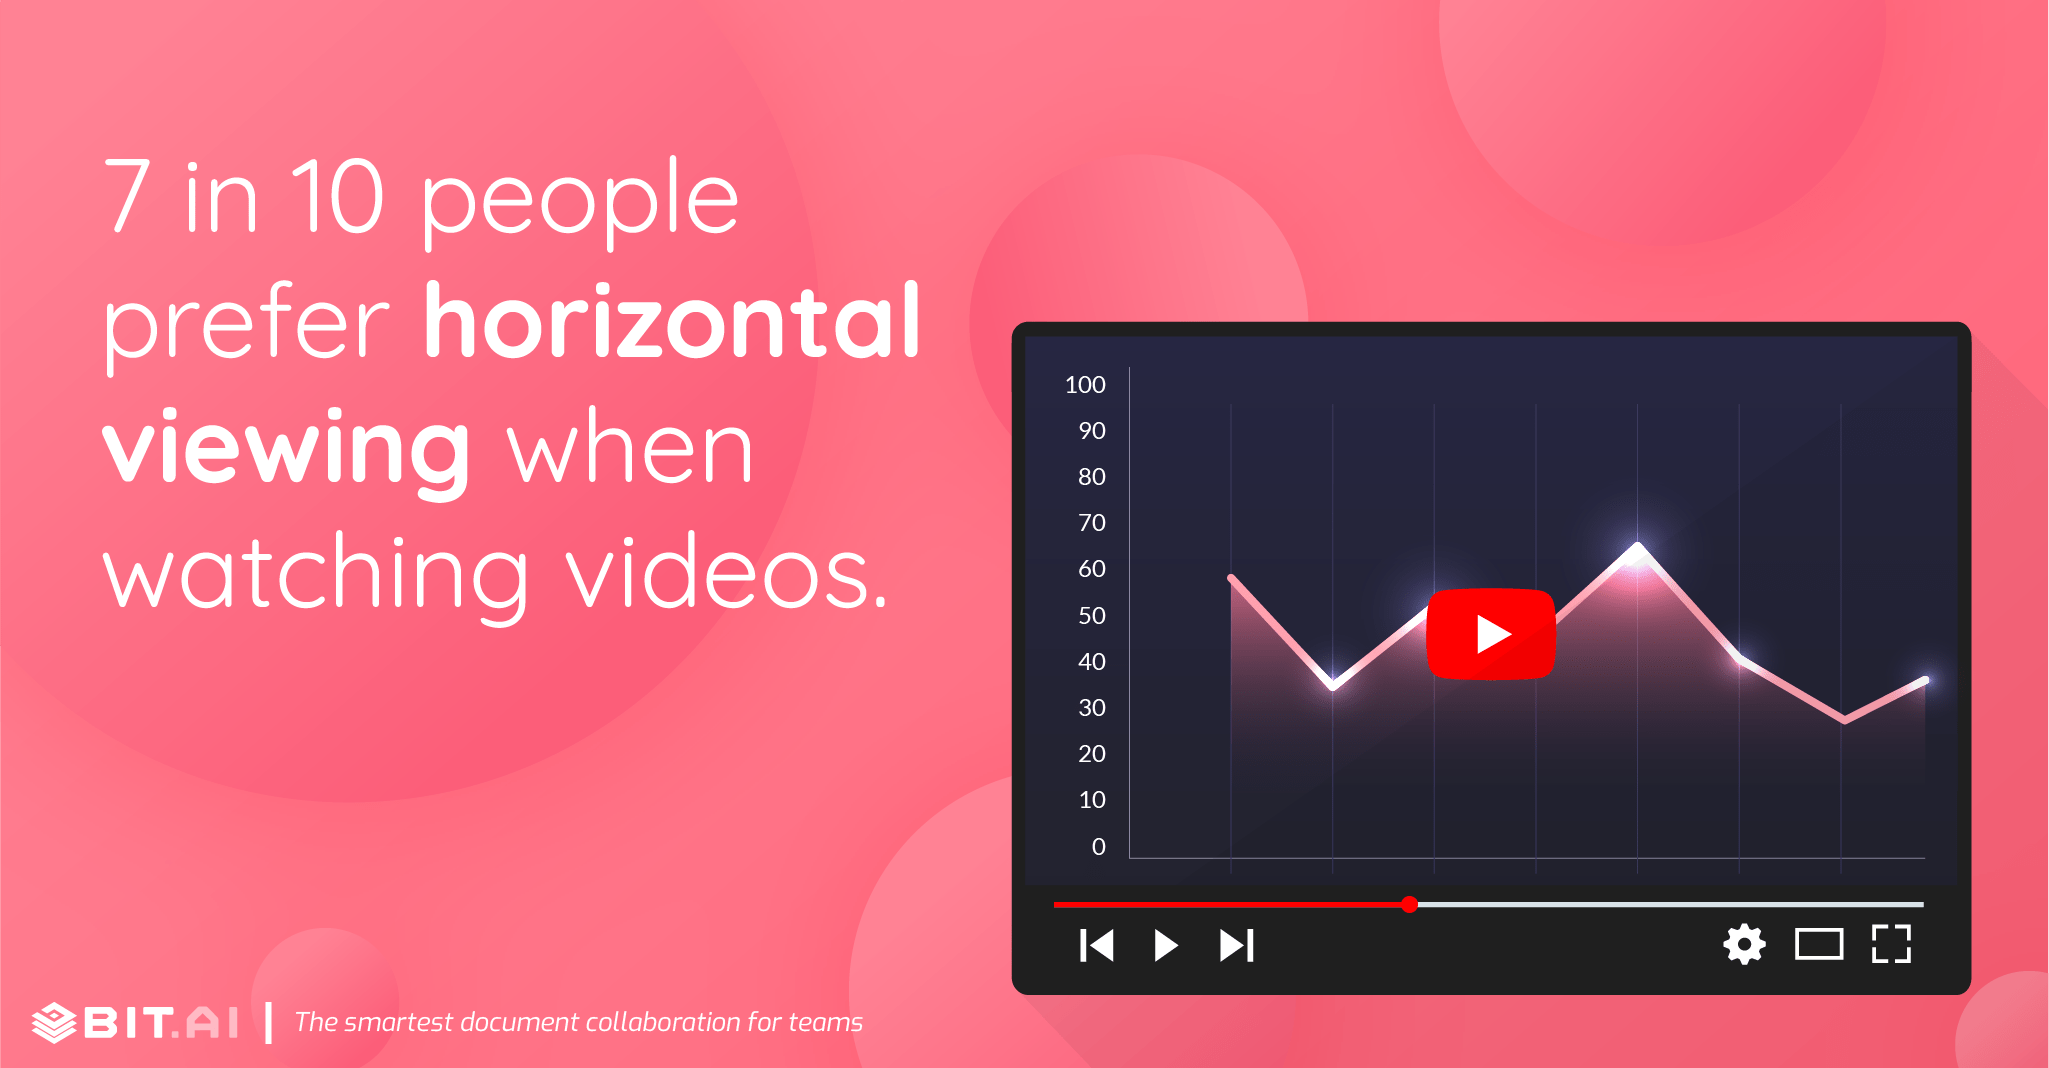 7 in 10 people default to horizontal viewing when watching videos.